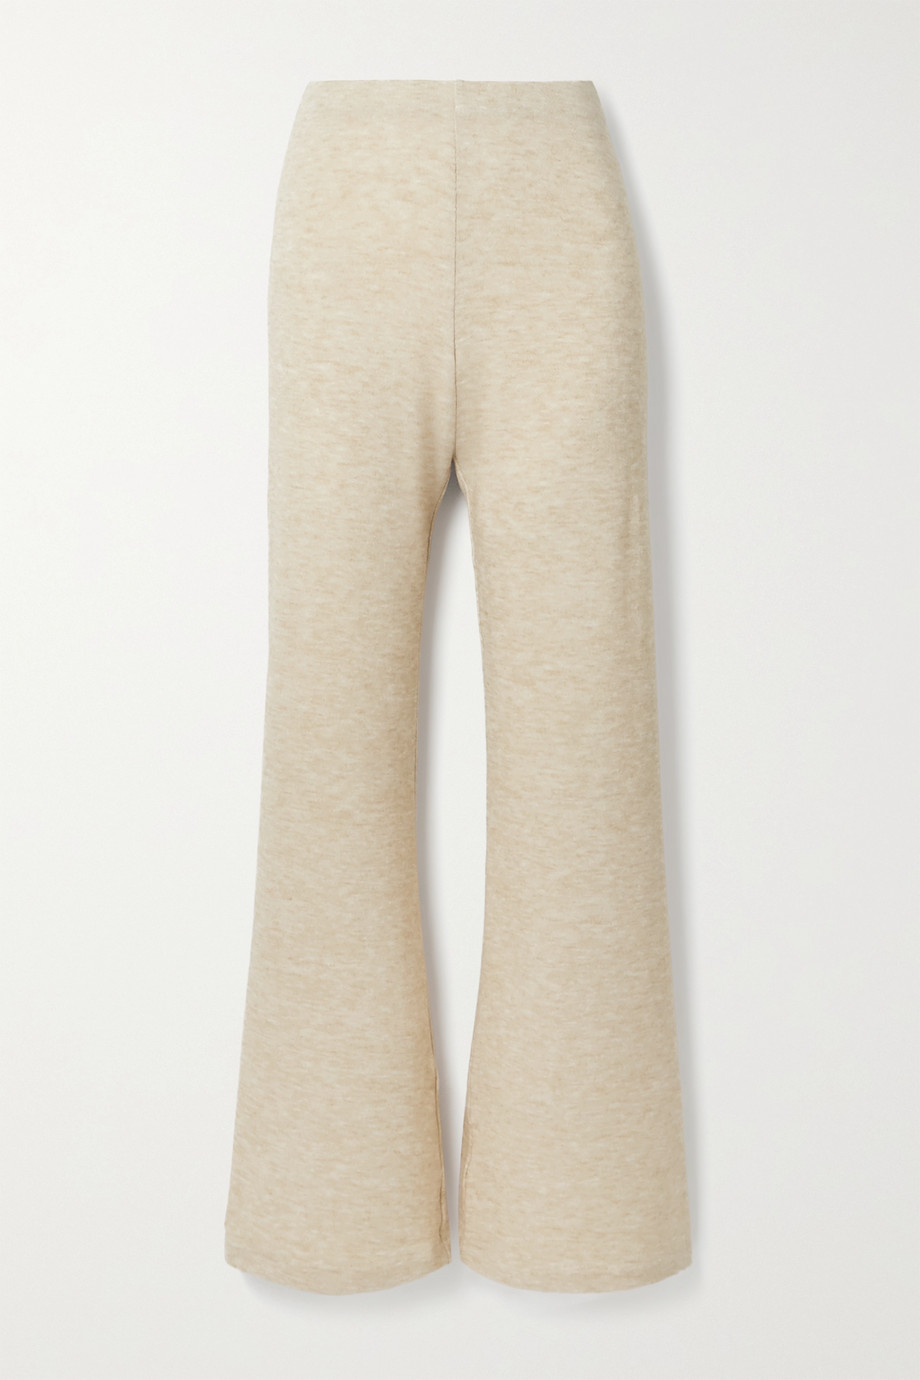 aaizél Mélange knitted flared pants